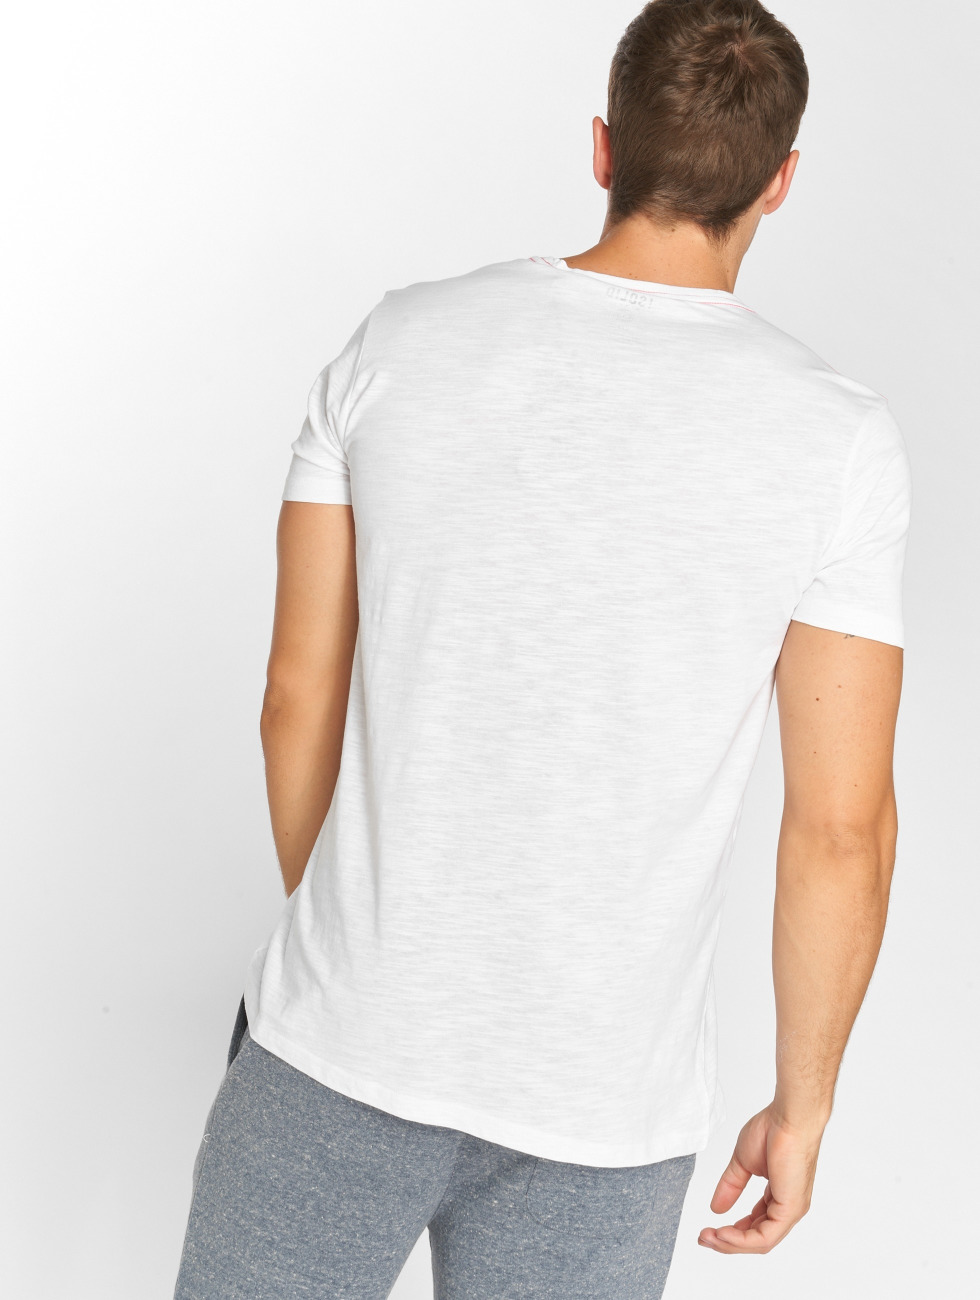 Solid t-shirt Odissan wit